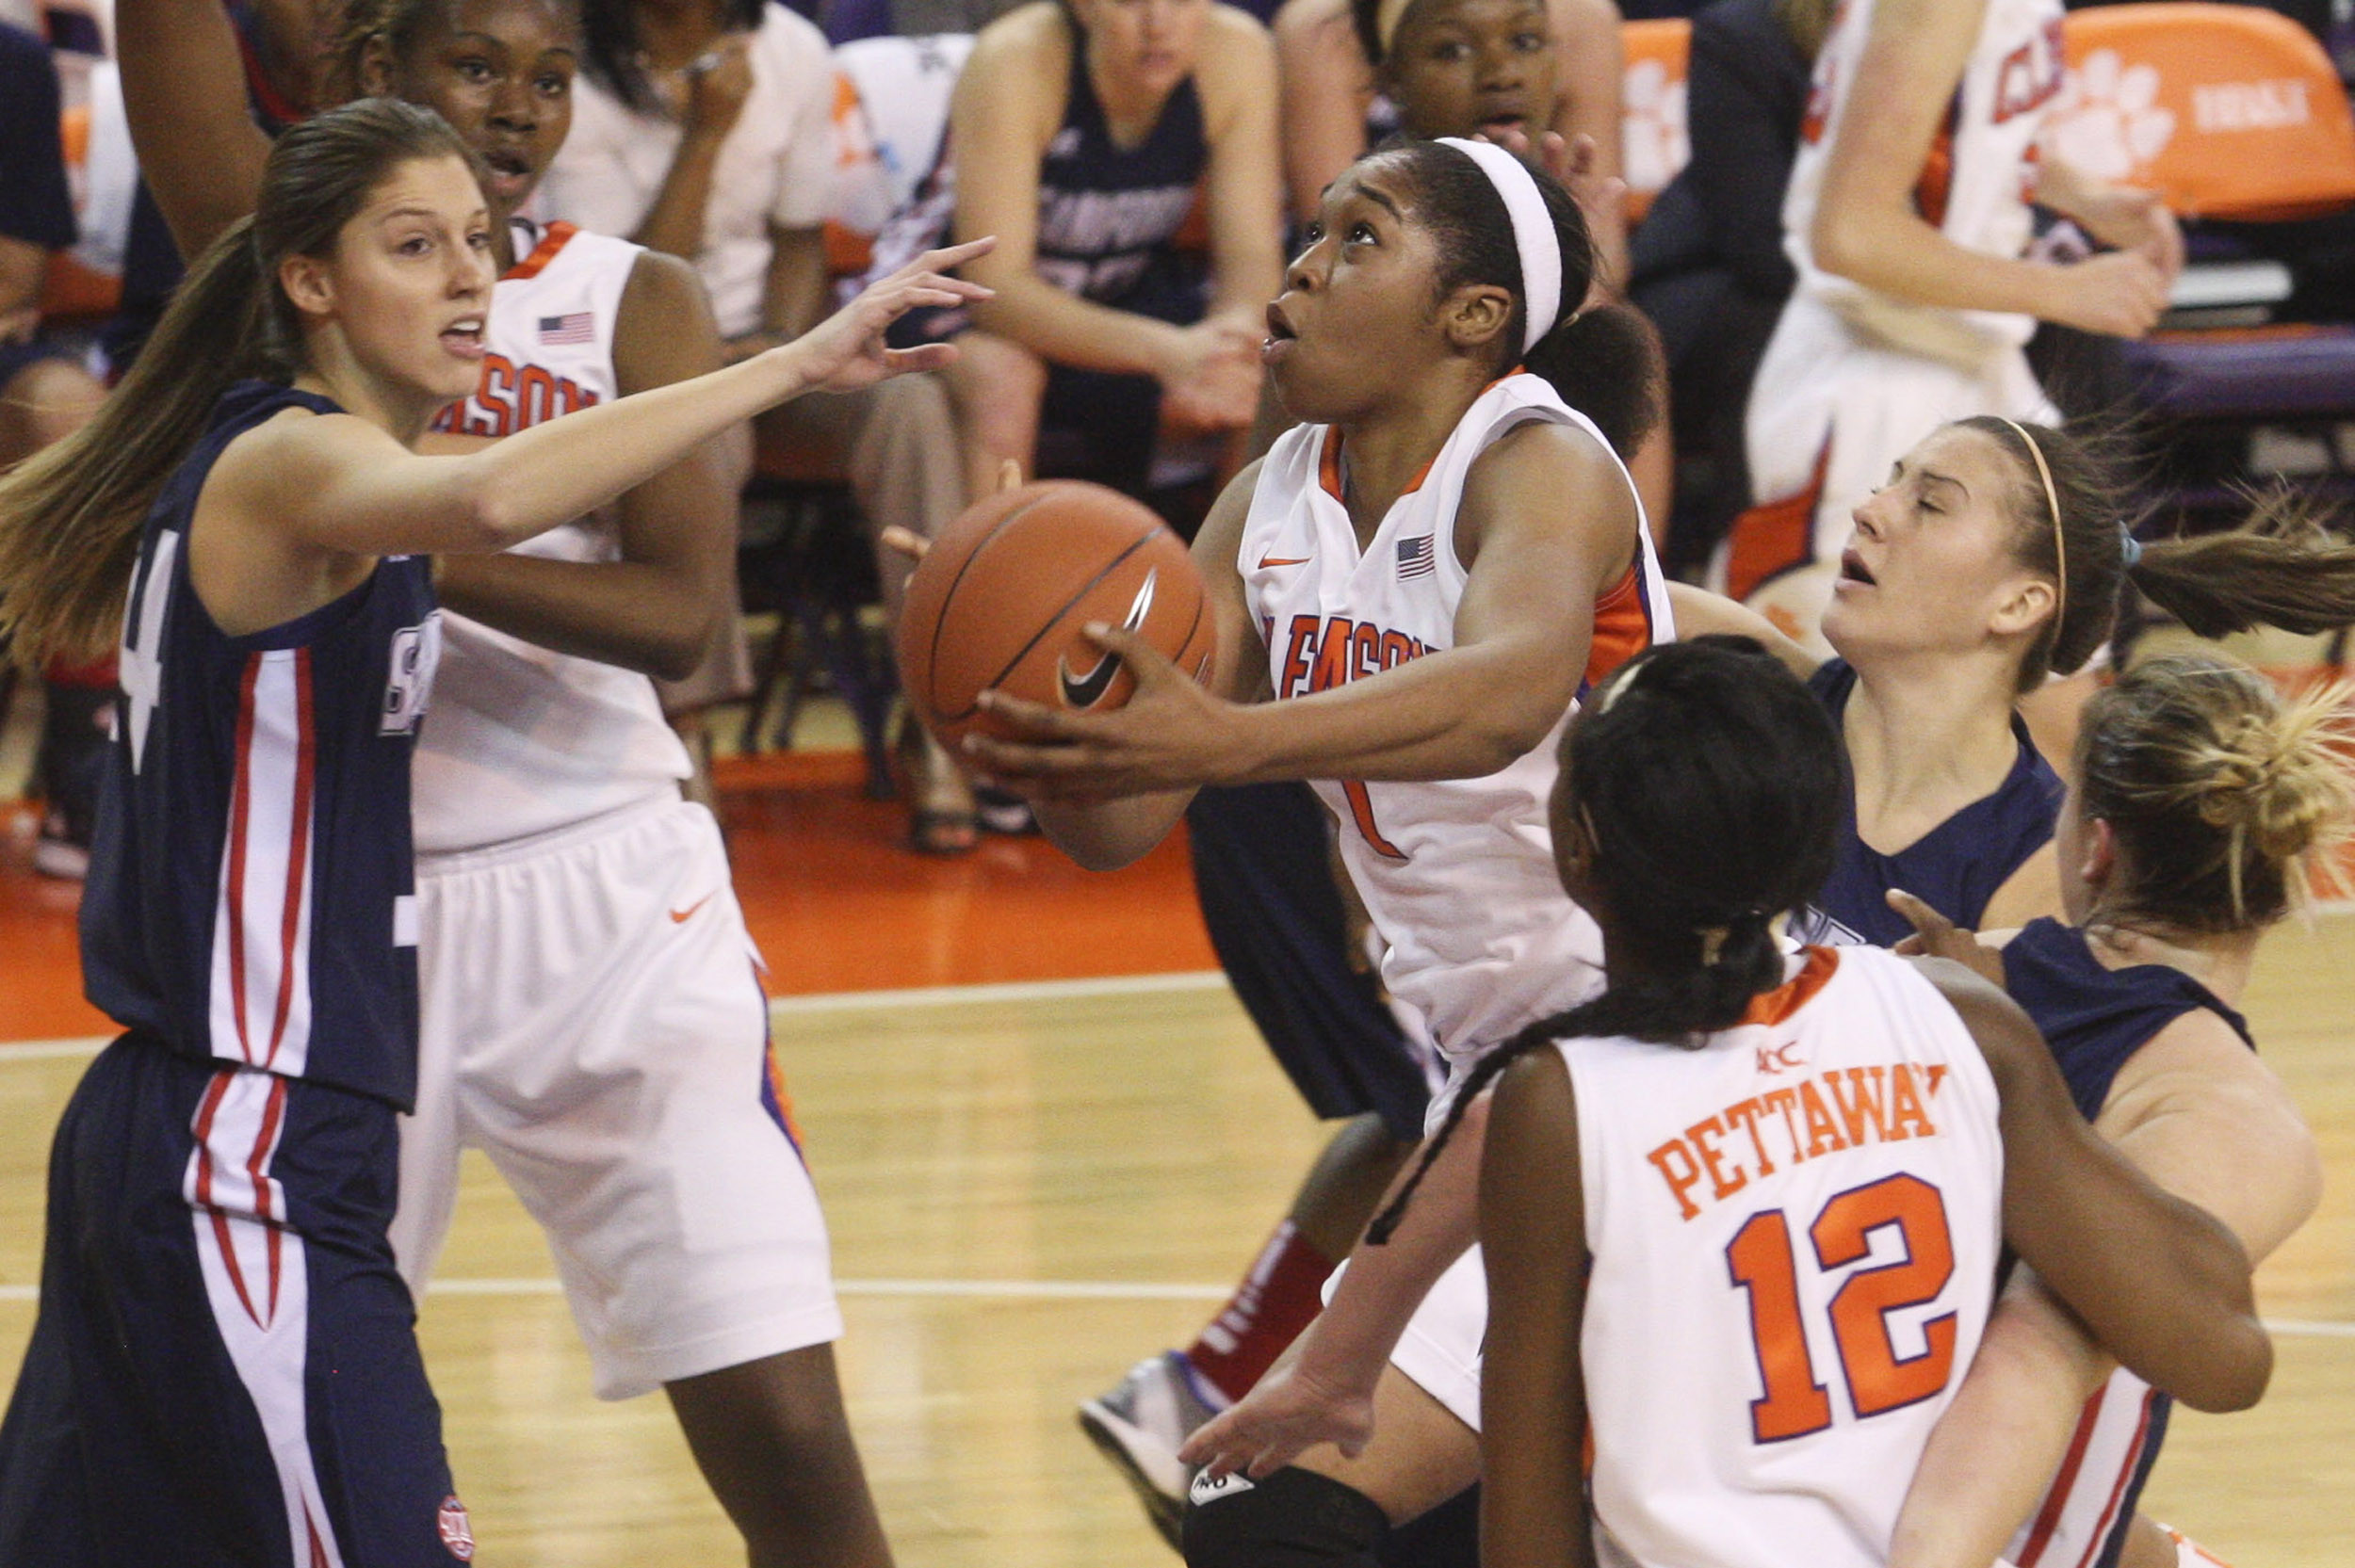 Clemson's Win Streak Hits Three After 63-51 Victory over Samford